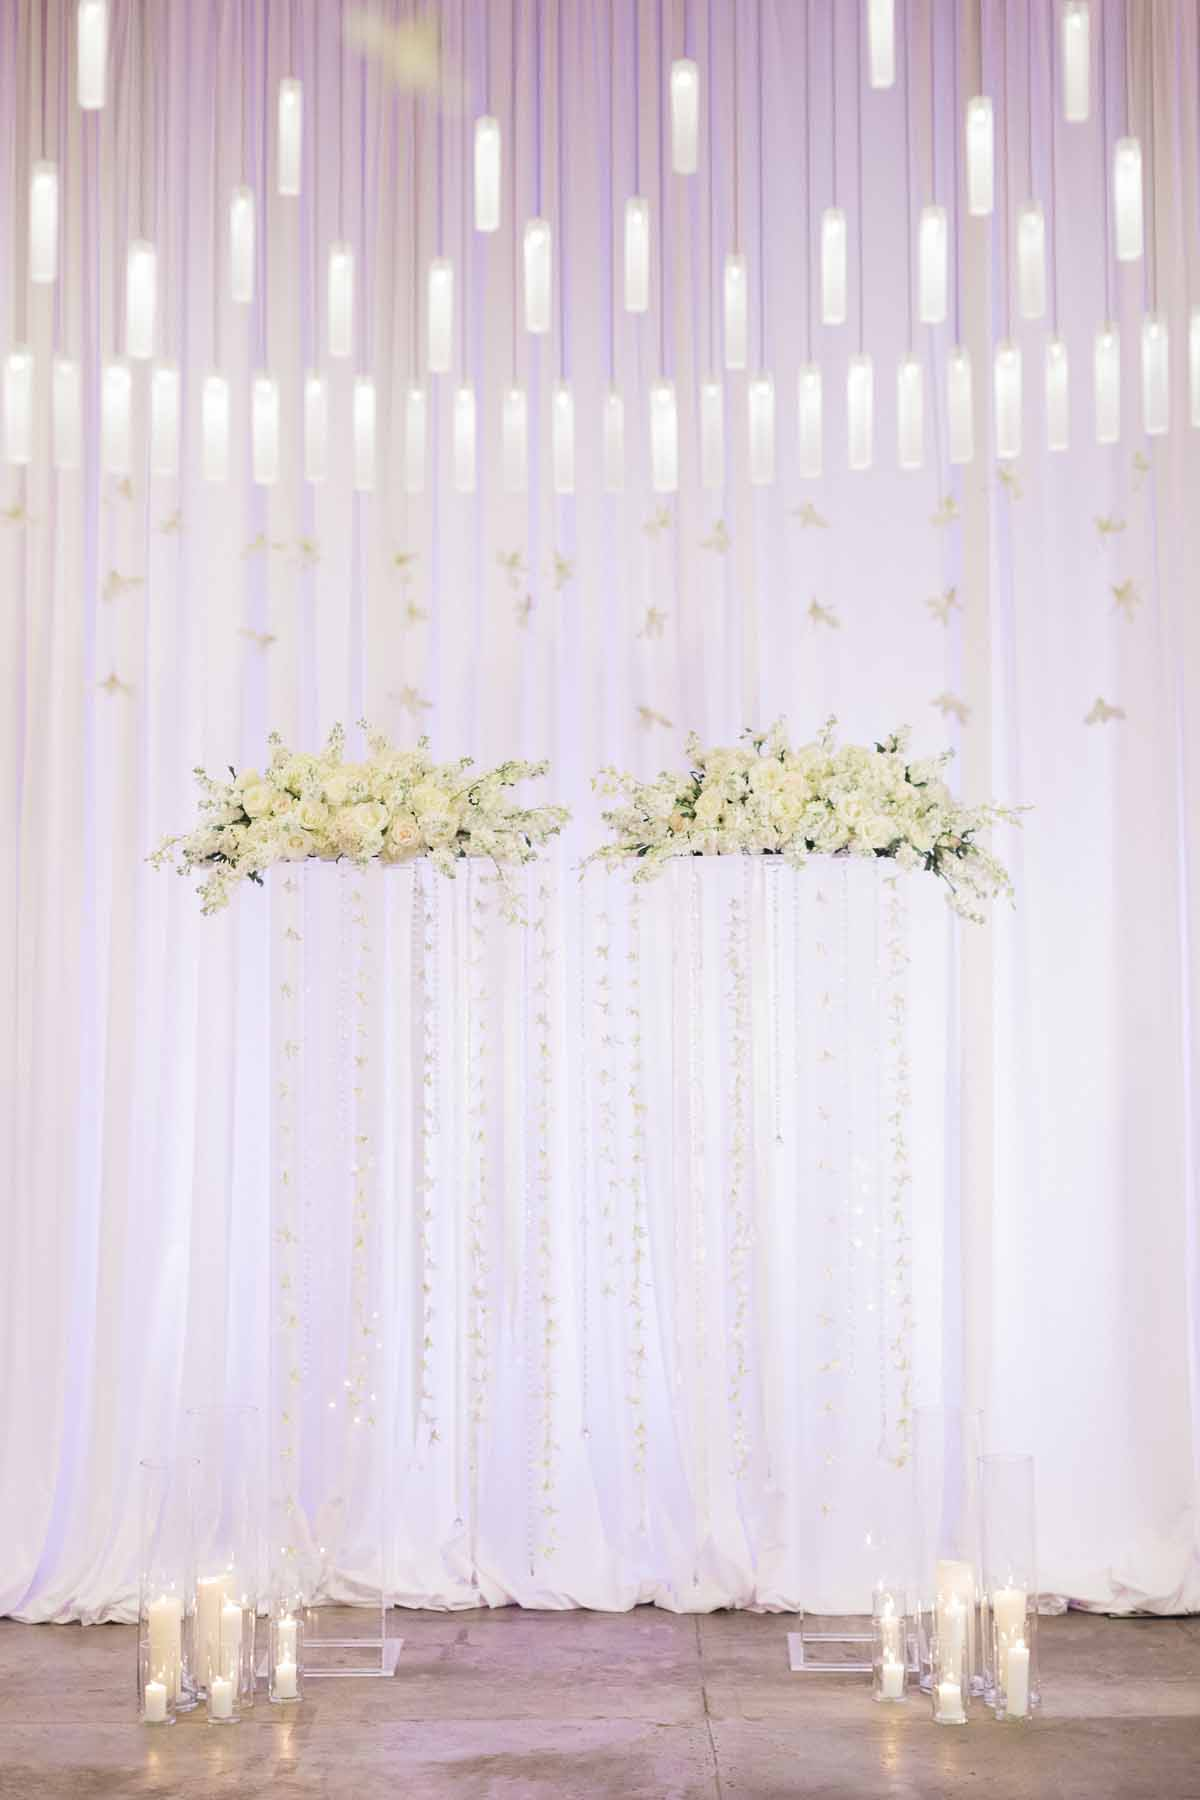 Ethereal wedding arch with clear lucite pillars